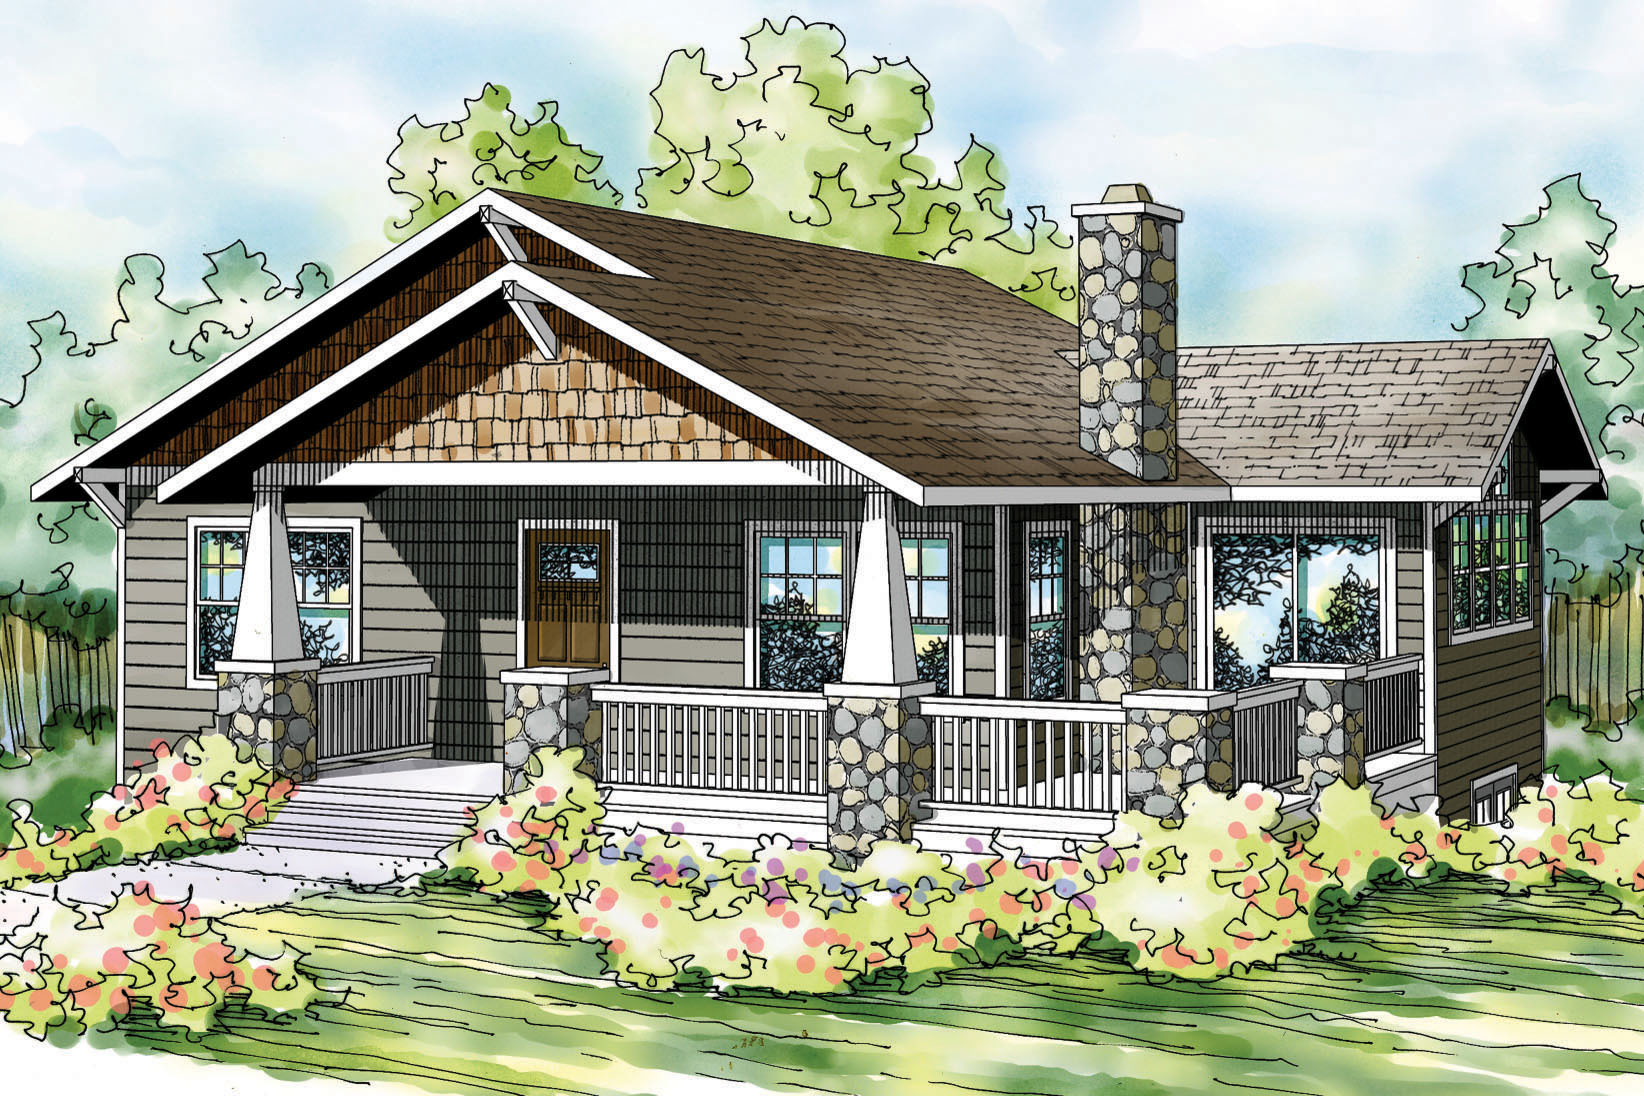 bungalow house plan lone rock 41 020 front elevation - Rock House Plans